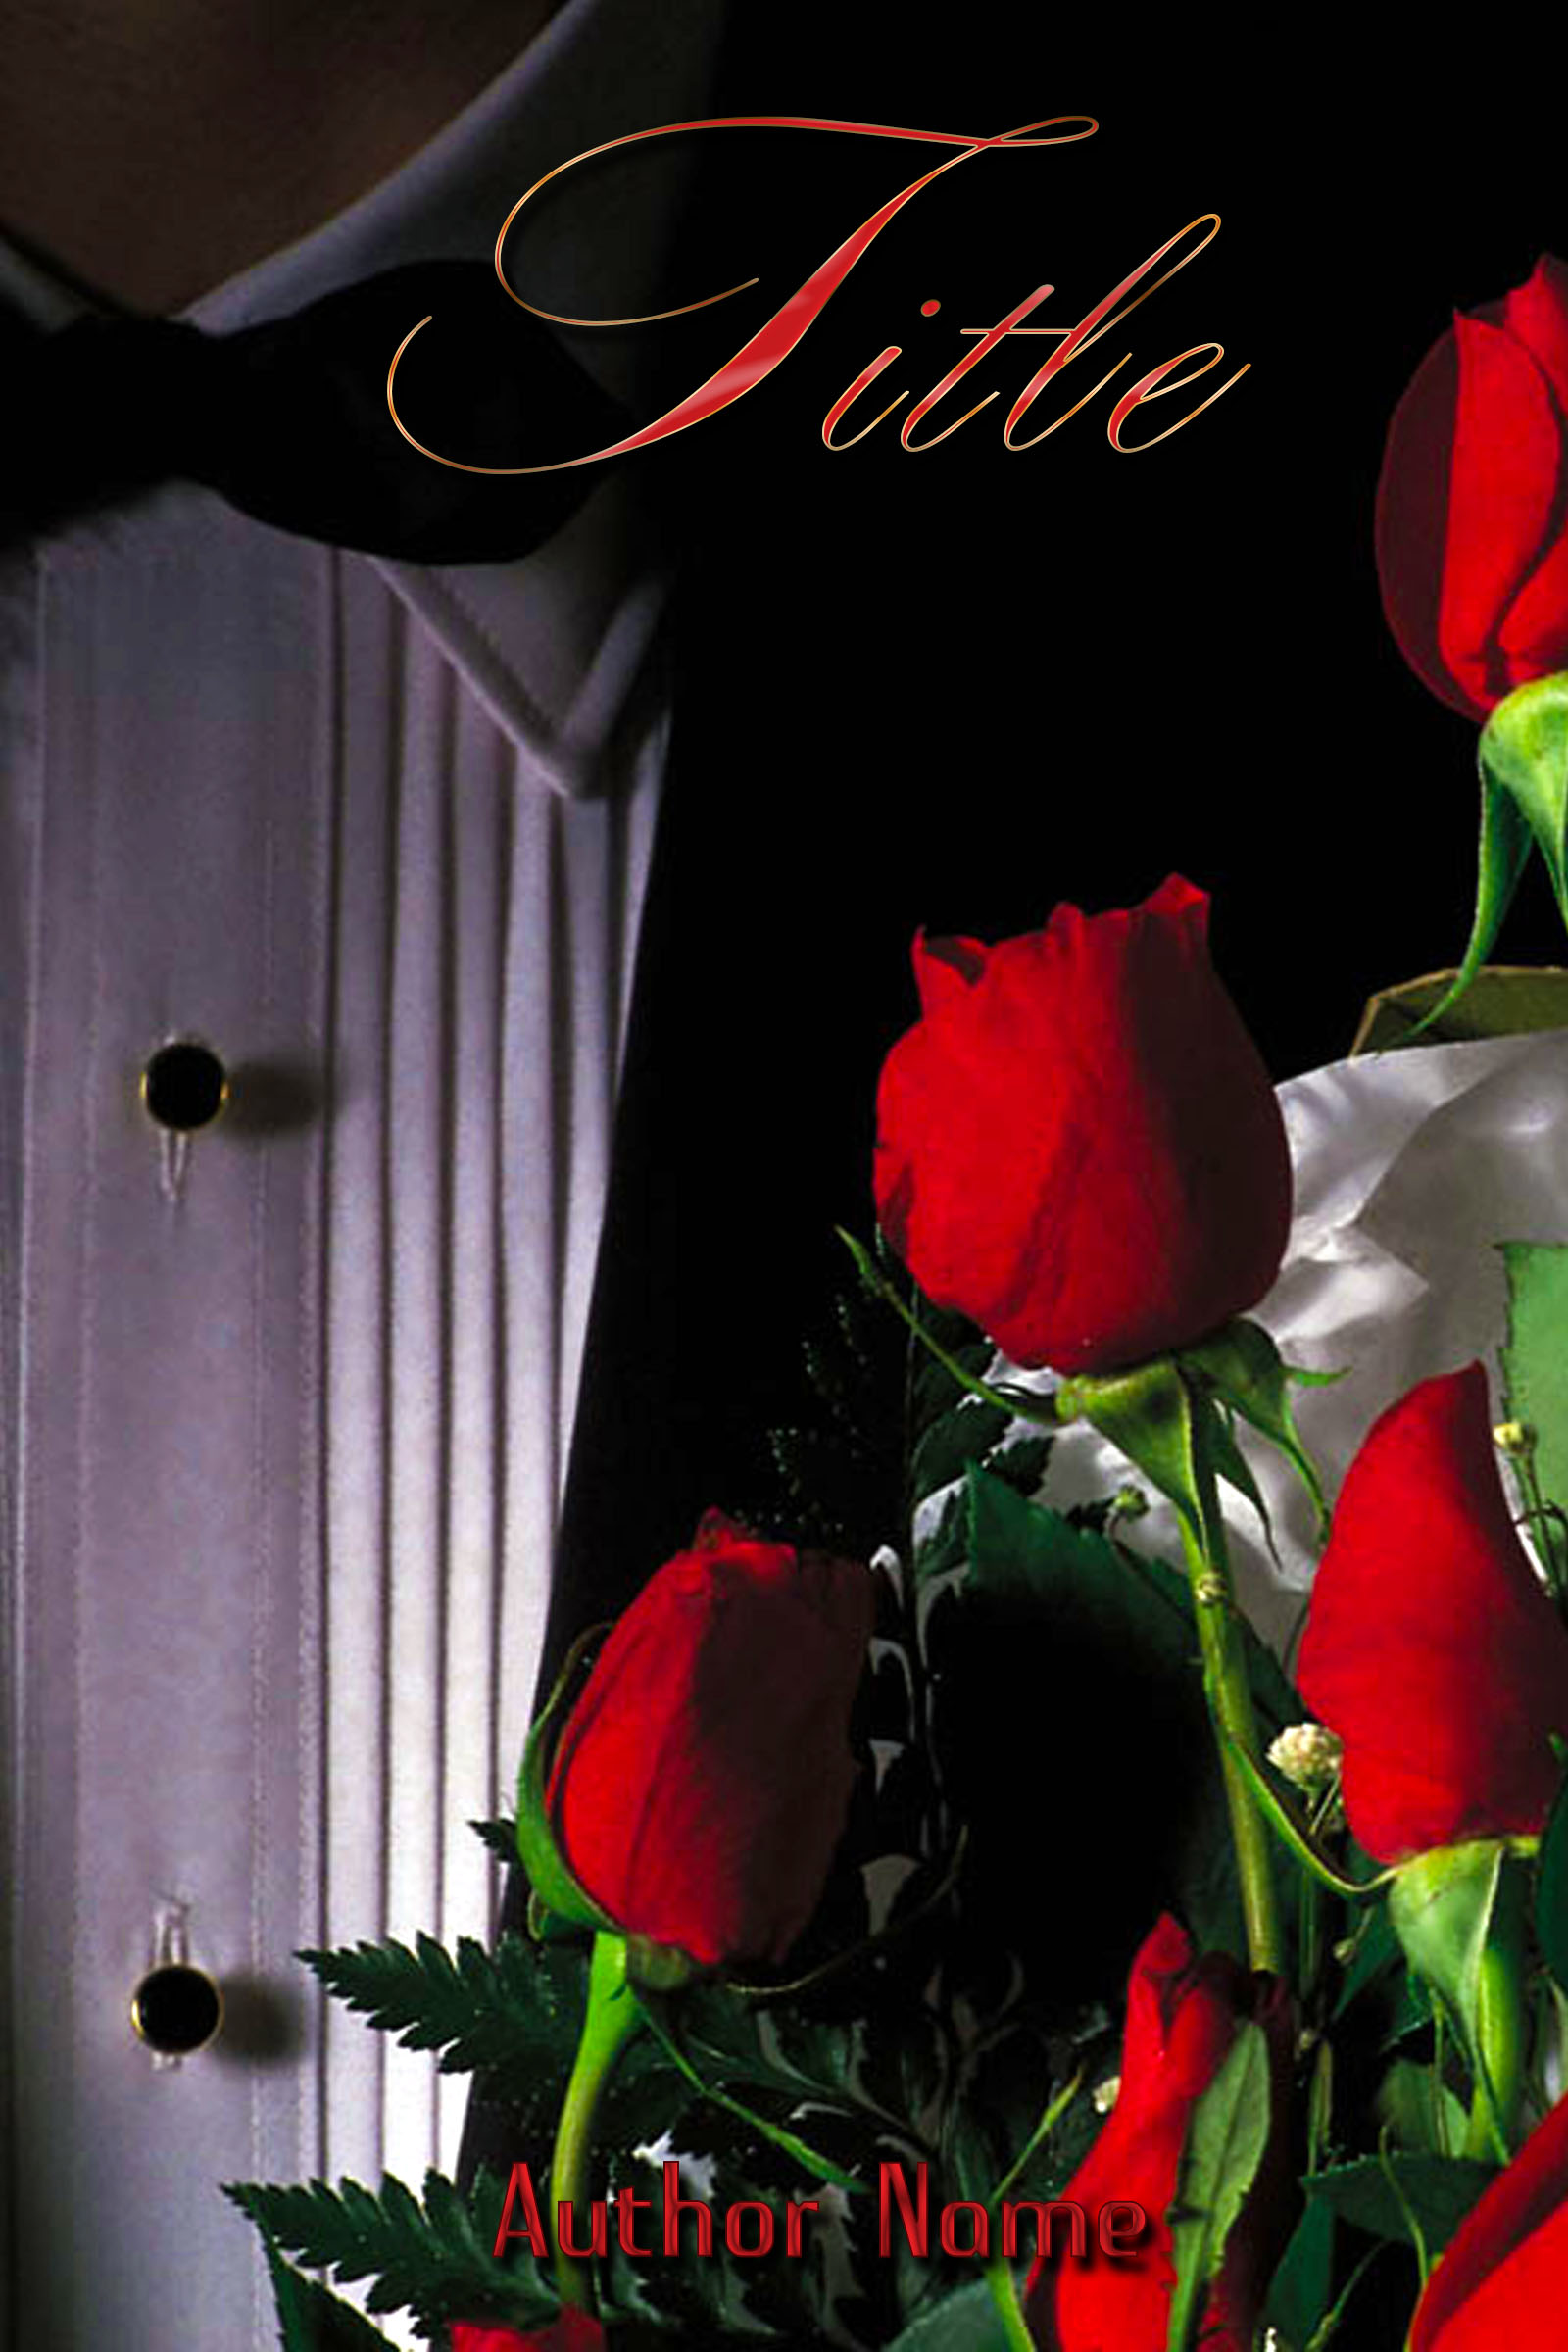 Book Cover Forros S : Man in tuxedo holding red roses the book cover designer